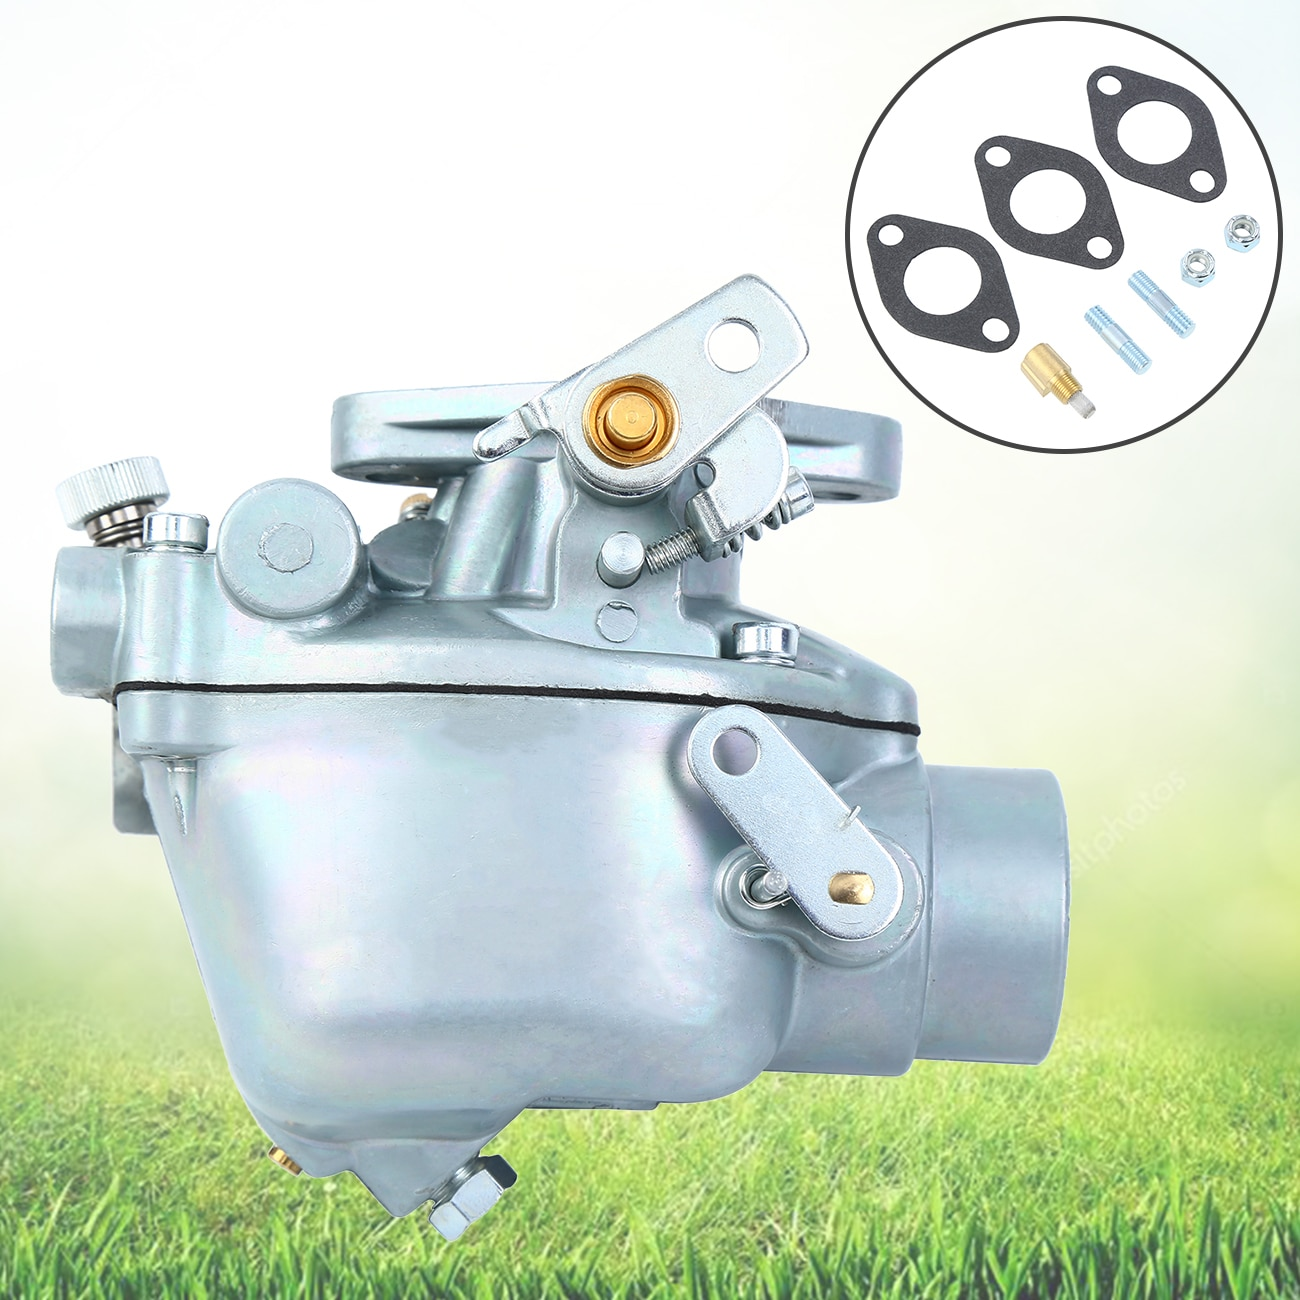 Samger 533969M91 Carburetor For Massey Ferguson Tractor F40 MH50 TO35 202 204 For Custom Long lasting and Low Power Consumption hot sale 3429996m1 cross joint universal joint suitable for massey ferguson tractor parts